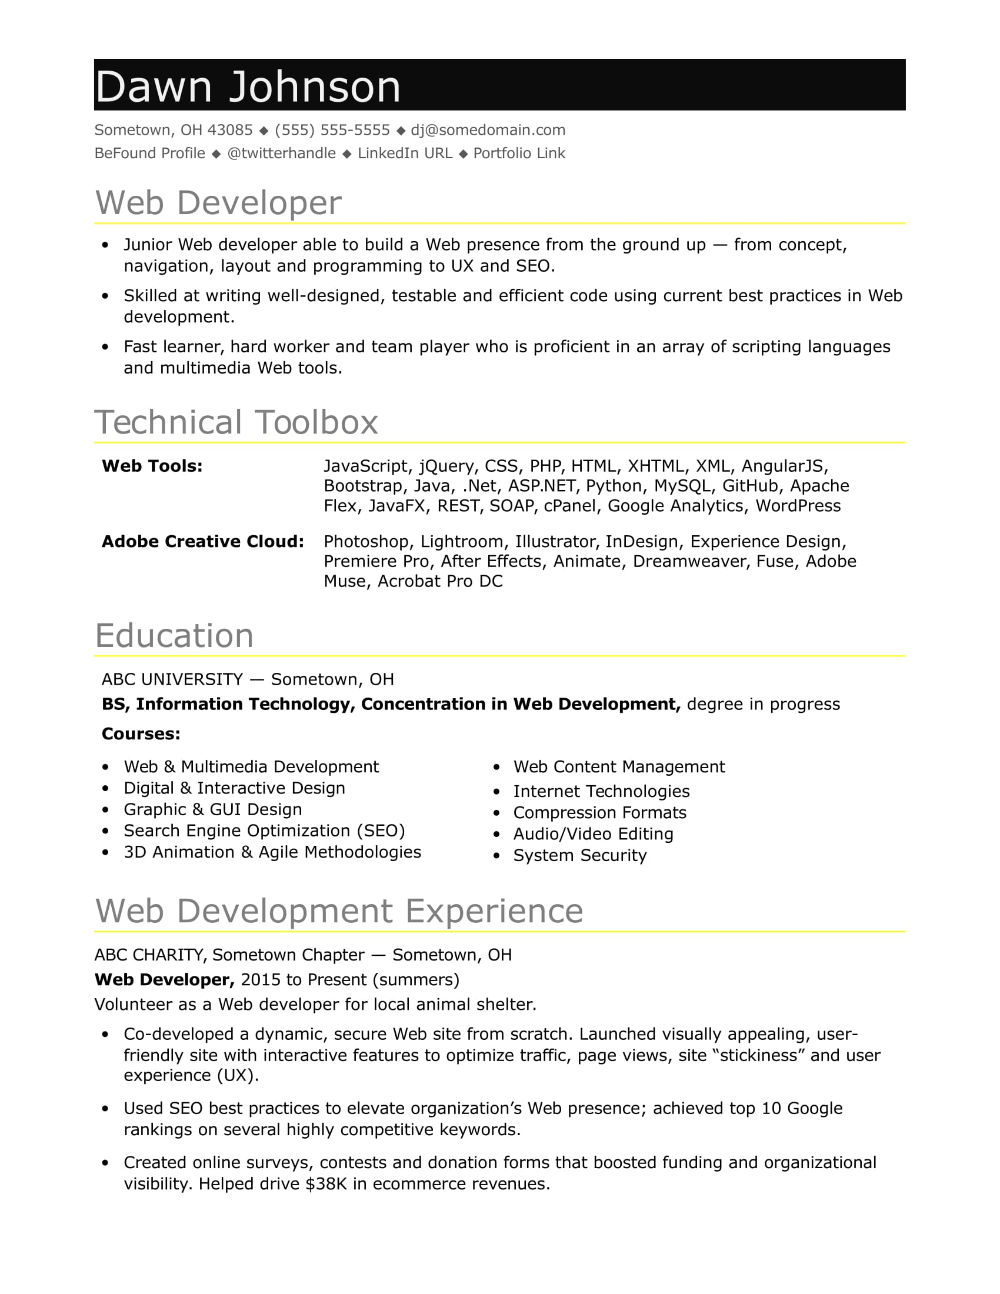 Are You An Expert In Software Development But A Novice In Resume Development Check Out This Sample Resume For An Experienced Software Developer Web Developer Resume Job Resume Samples Resume Template